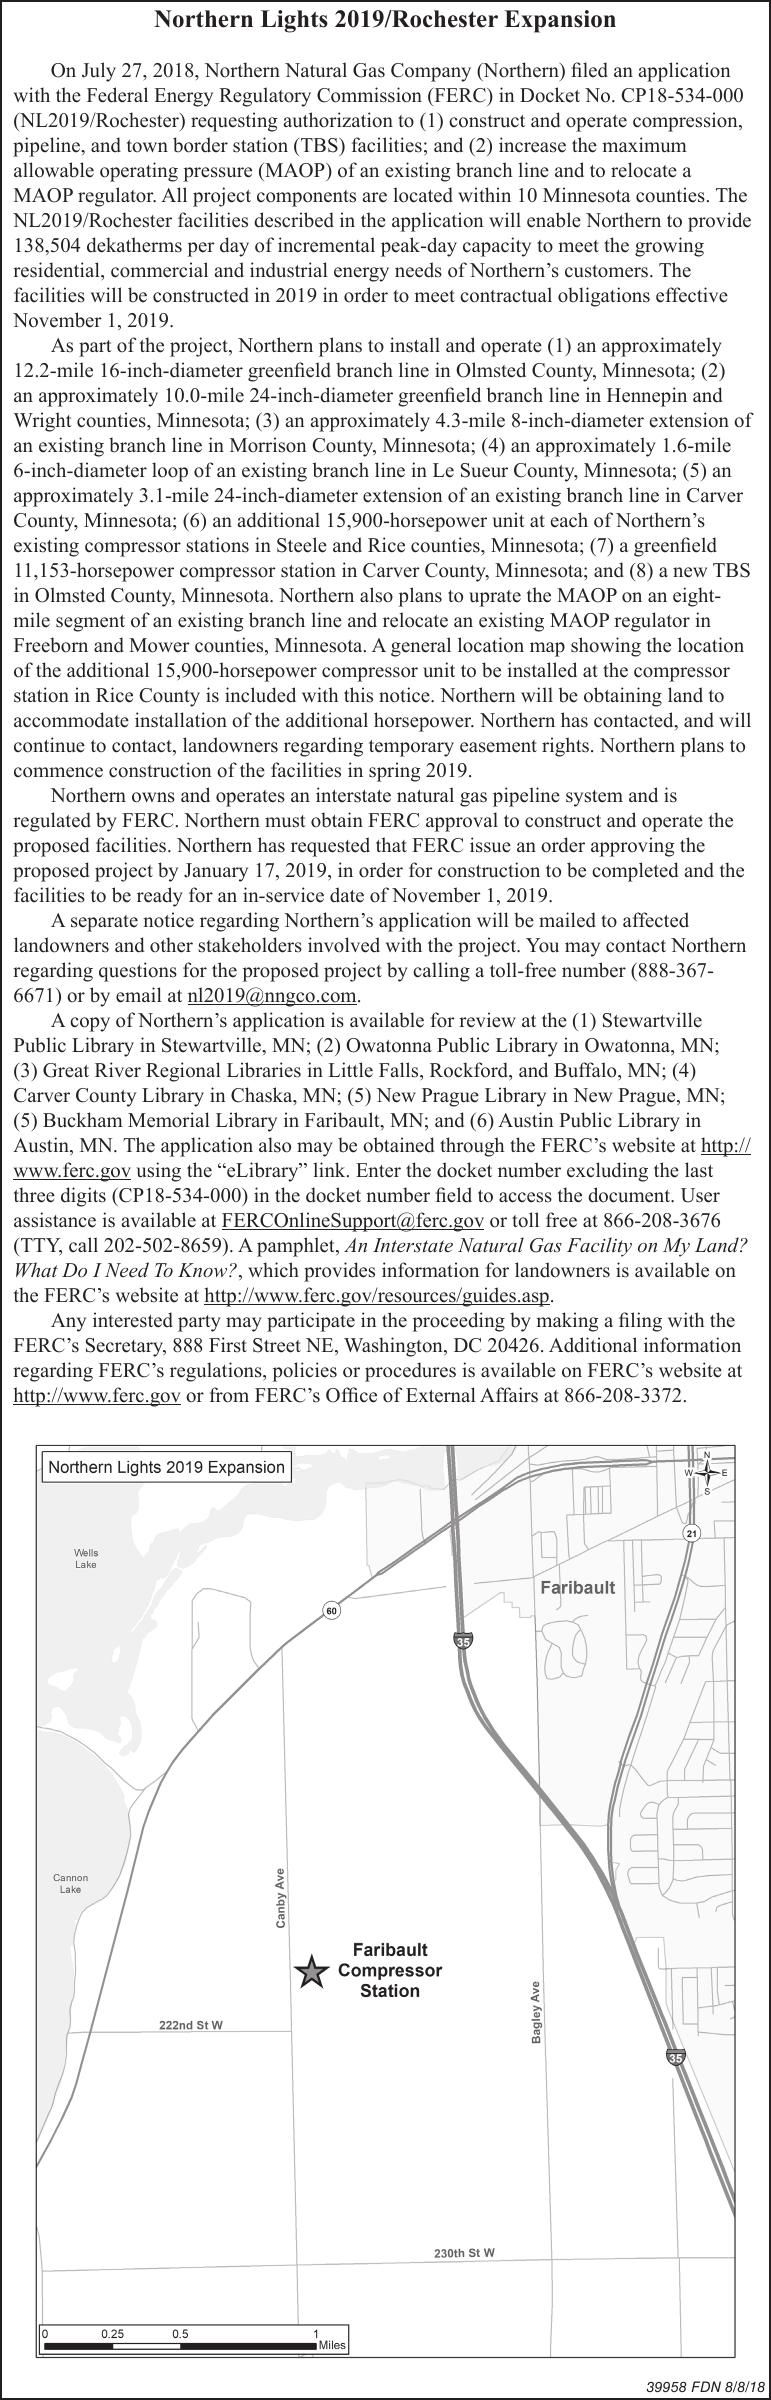 Northern Natural Gas: Northern Lights 2019/Rochester Expansion Notice